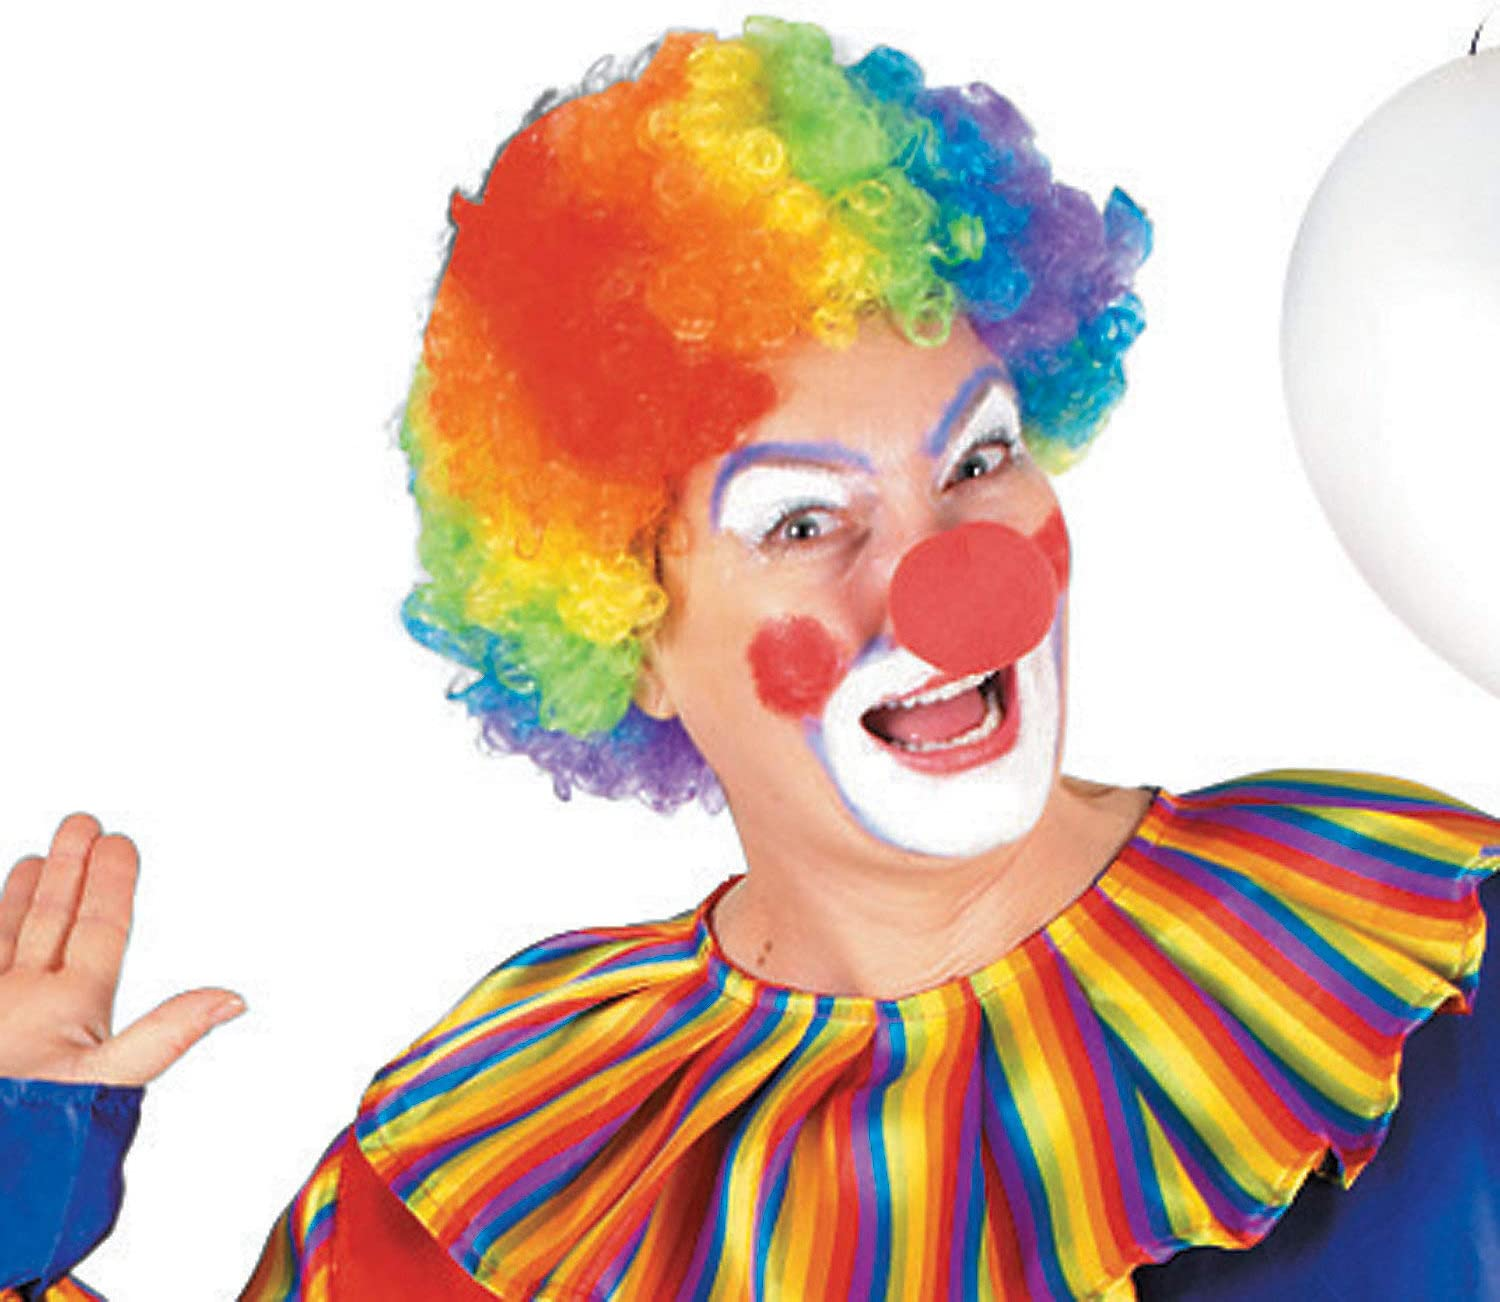 Fun Express - Rainbow Clown Wig for Party - Apparel Accessories - Costume Accessories - Wigs & Beards - Party - 1 Piece